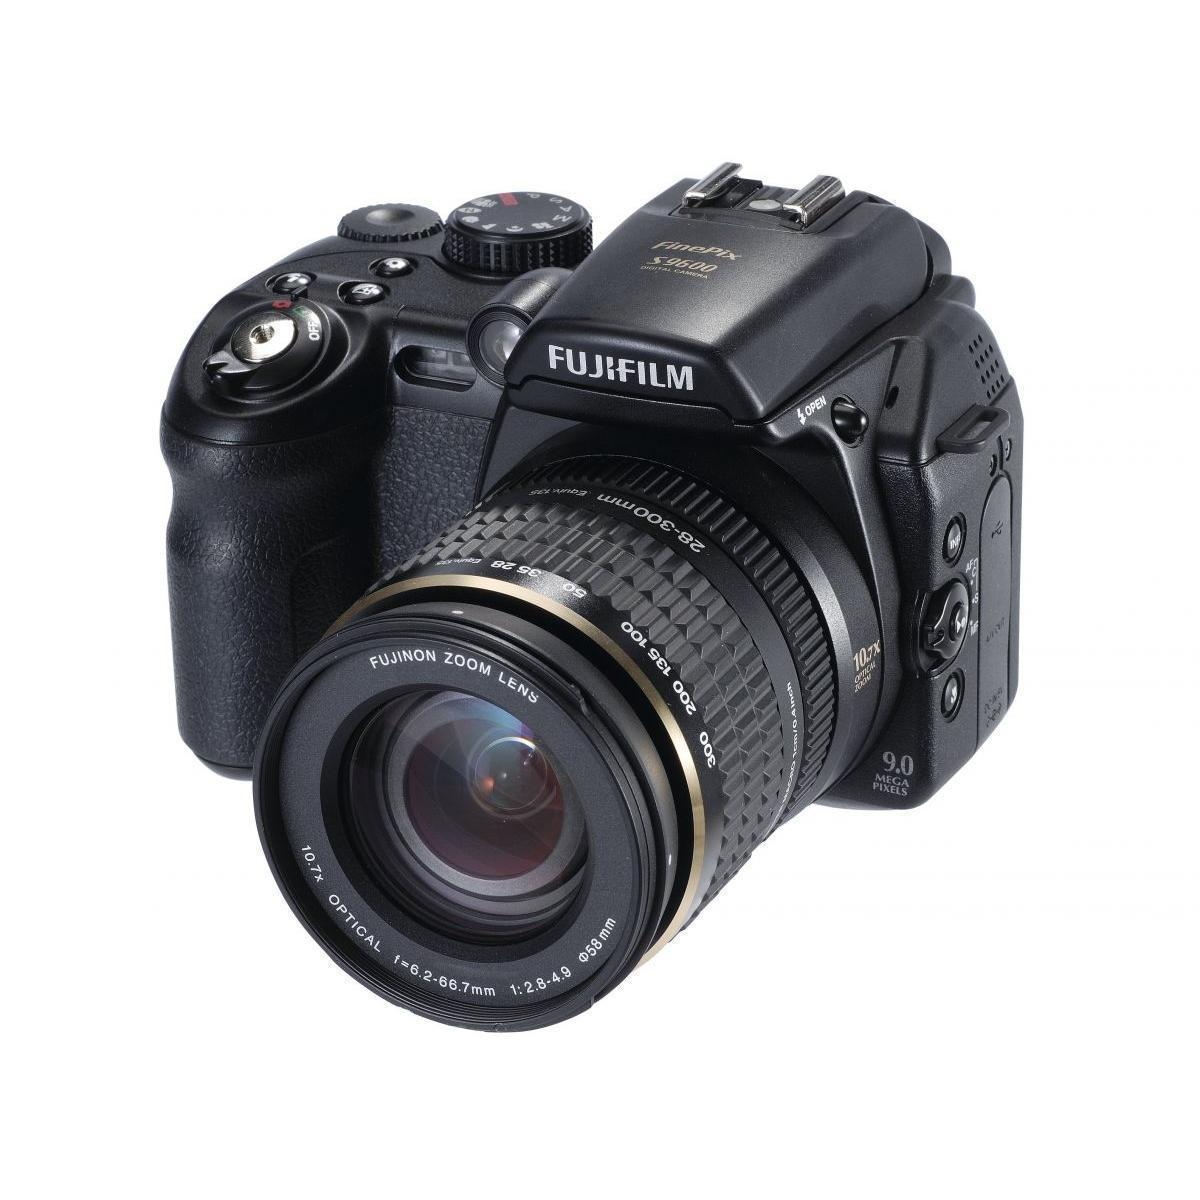 Fujifilm - FinePix S9600 9 MP